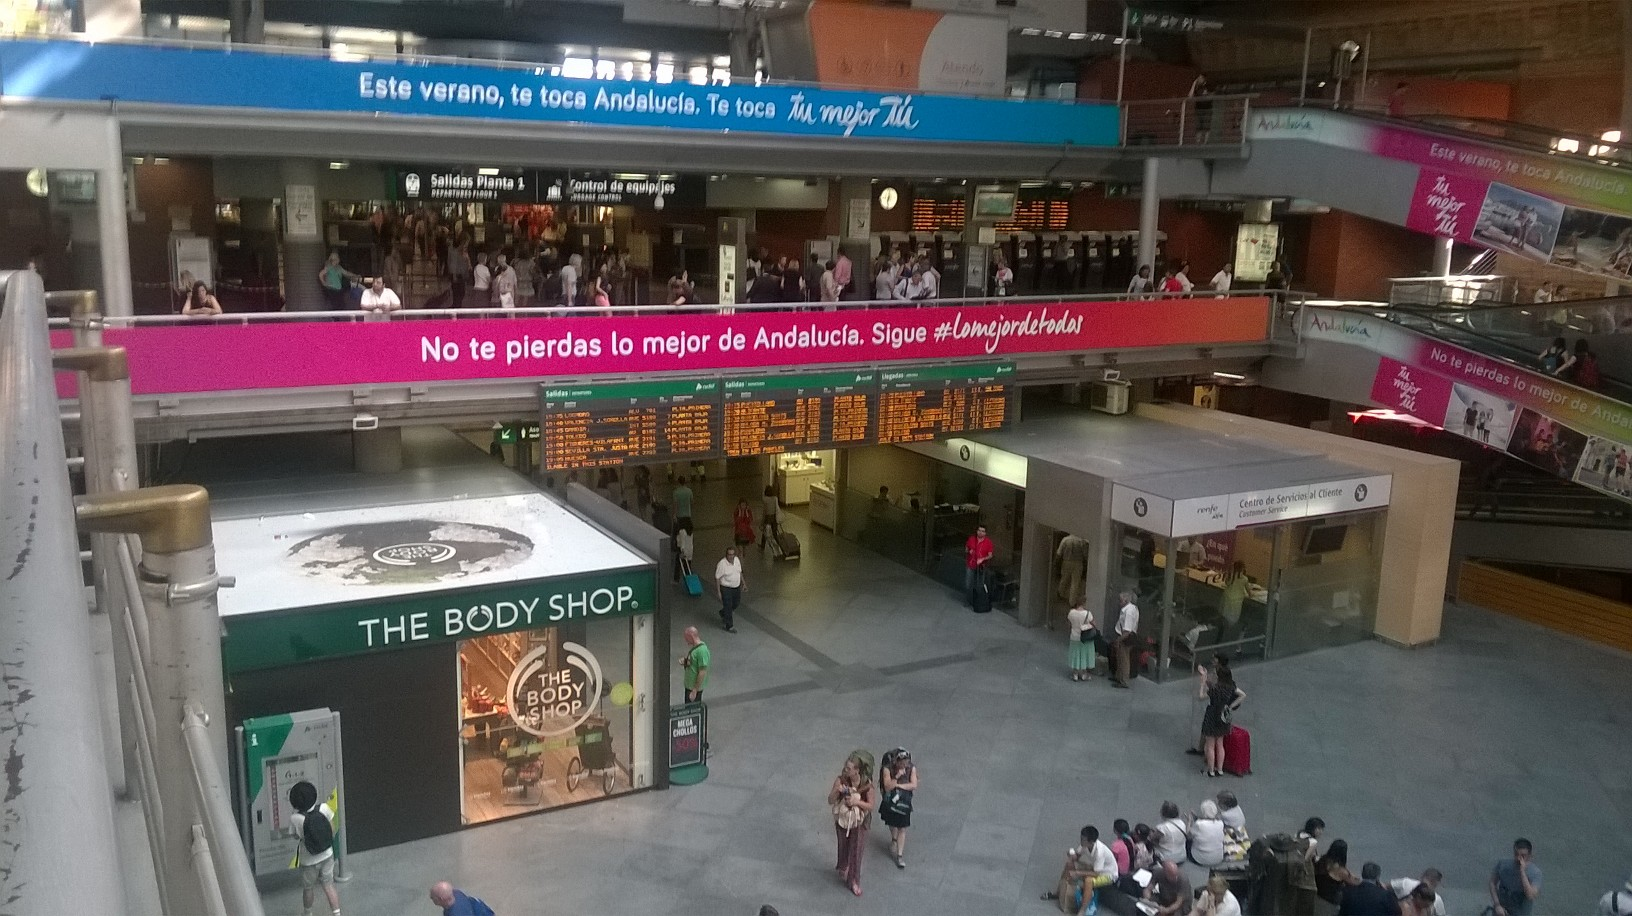 mad-atocha-national-trains-board-arriv-and-depart